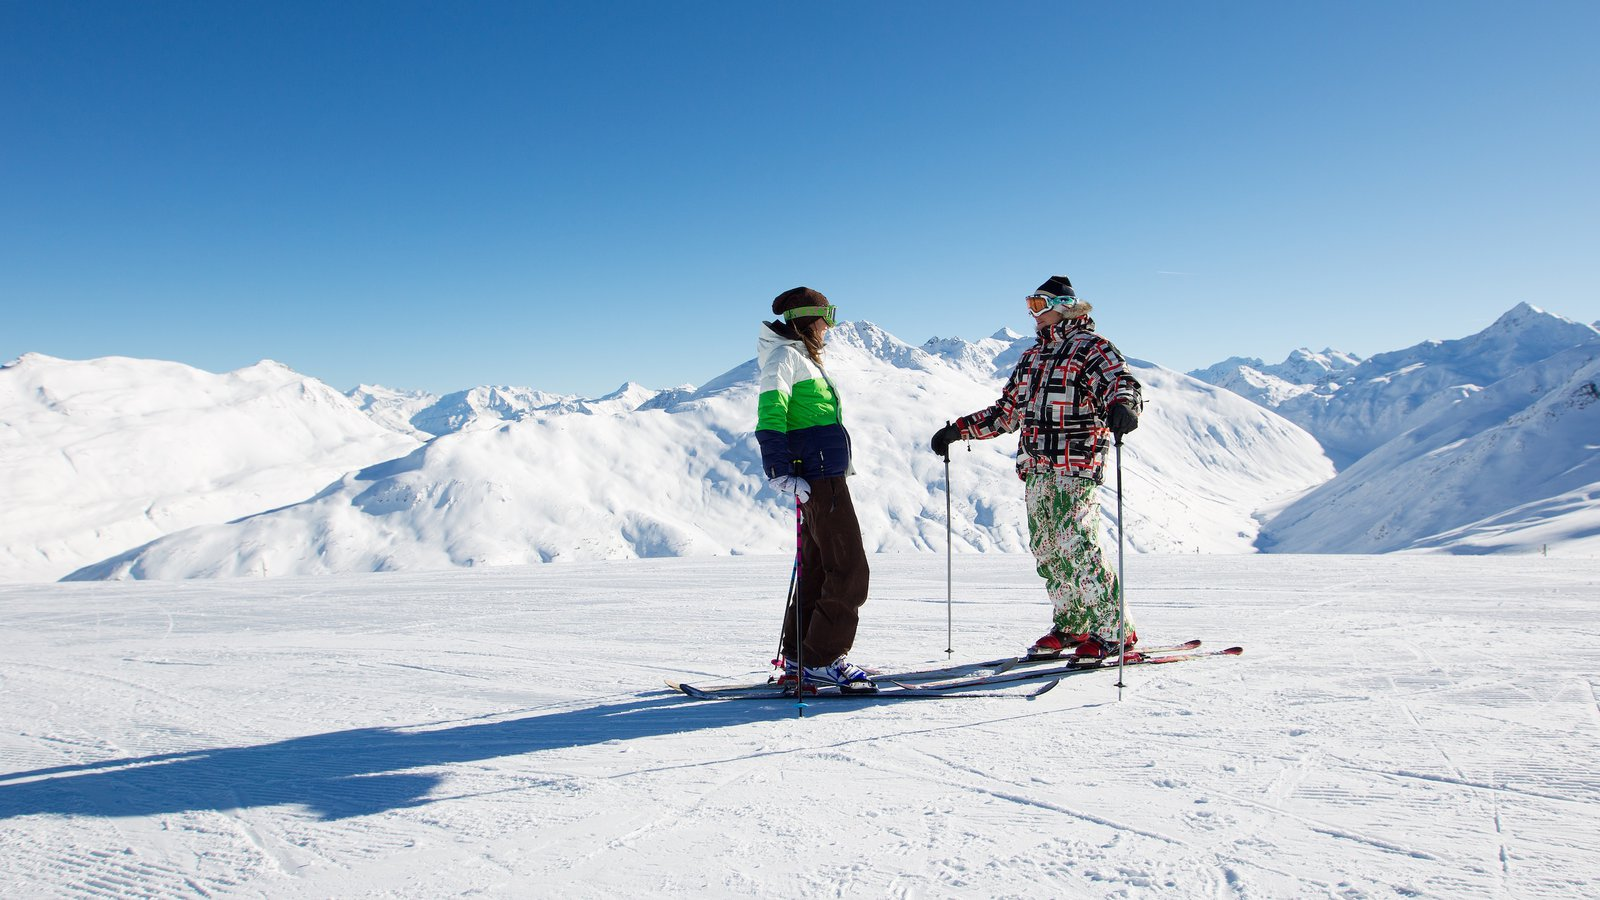 Livigno Ski Area which includes mountains, tranquil scenes and snow